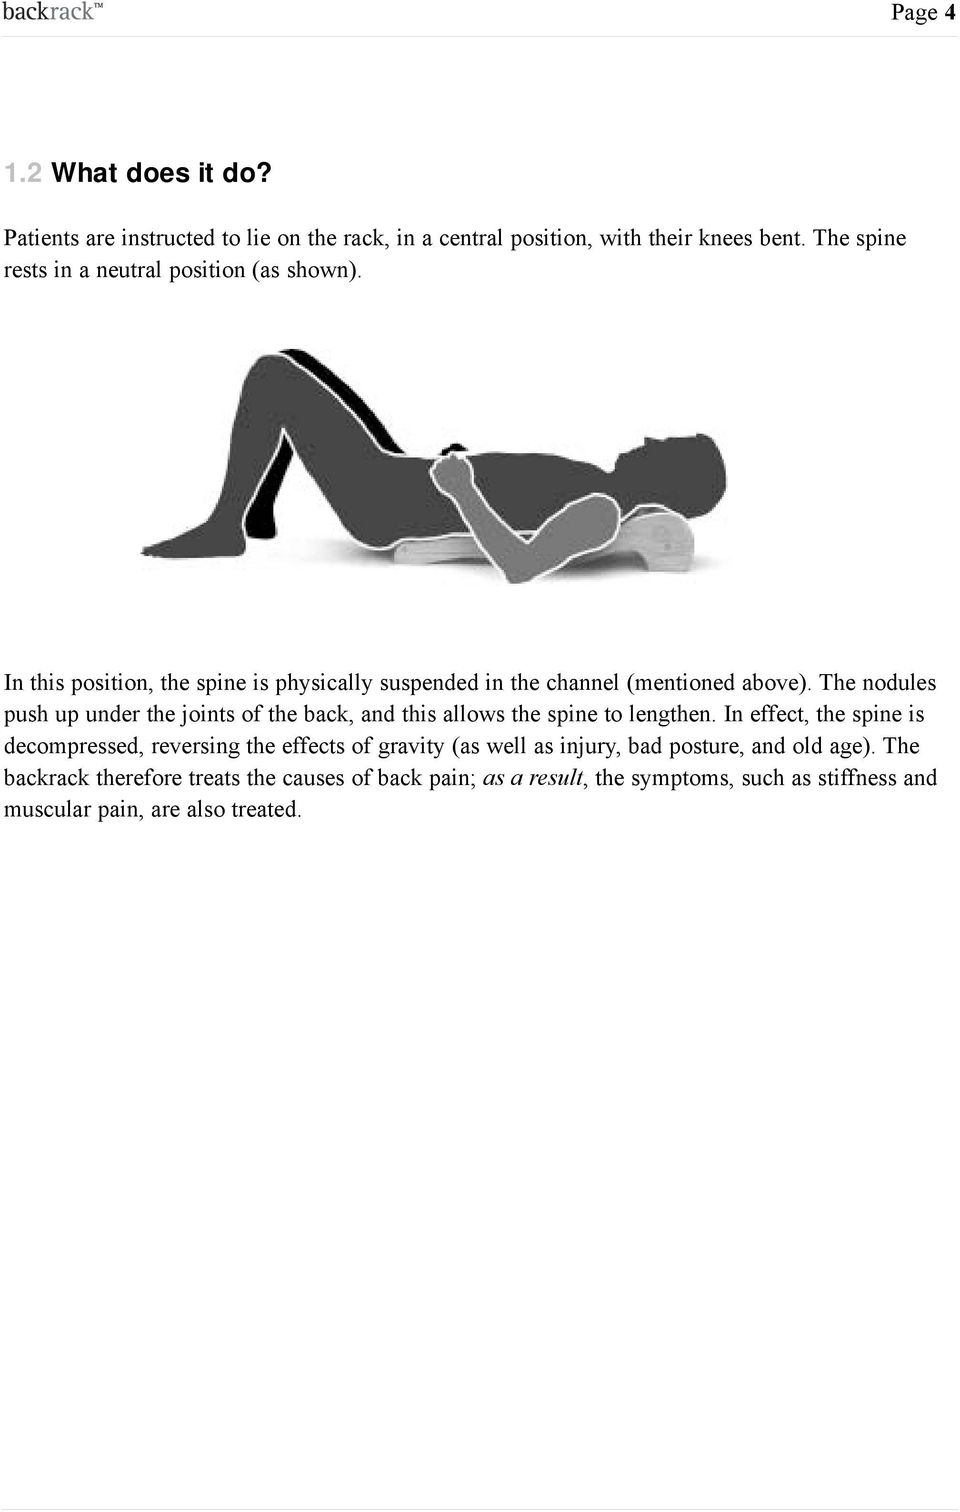 The nodules push up under the joints of the back, and this allows the spine to lengthen.